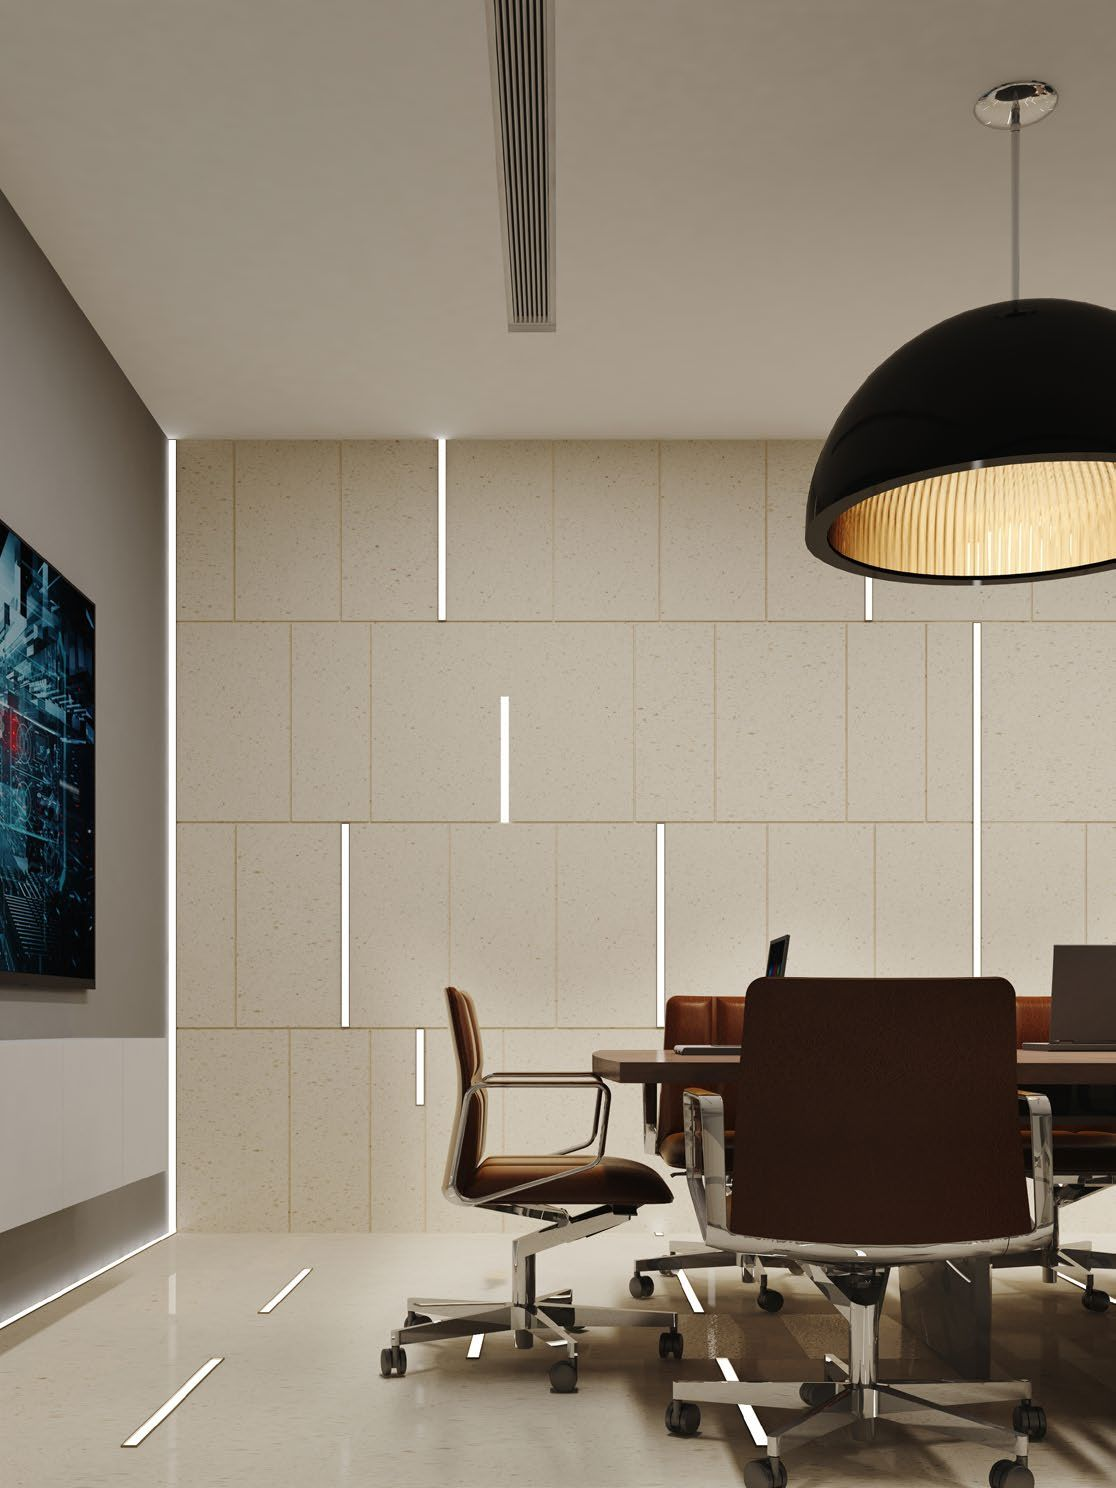 Office Wall Design Minimalist Design Office Ideas Office Lighting Wall